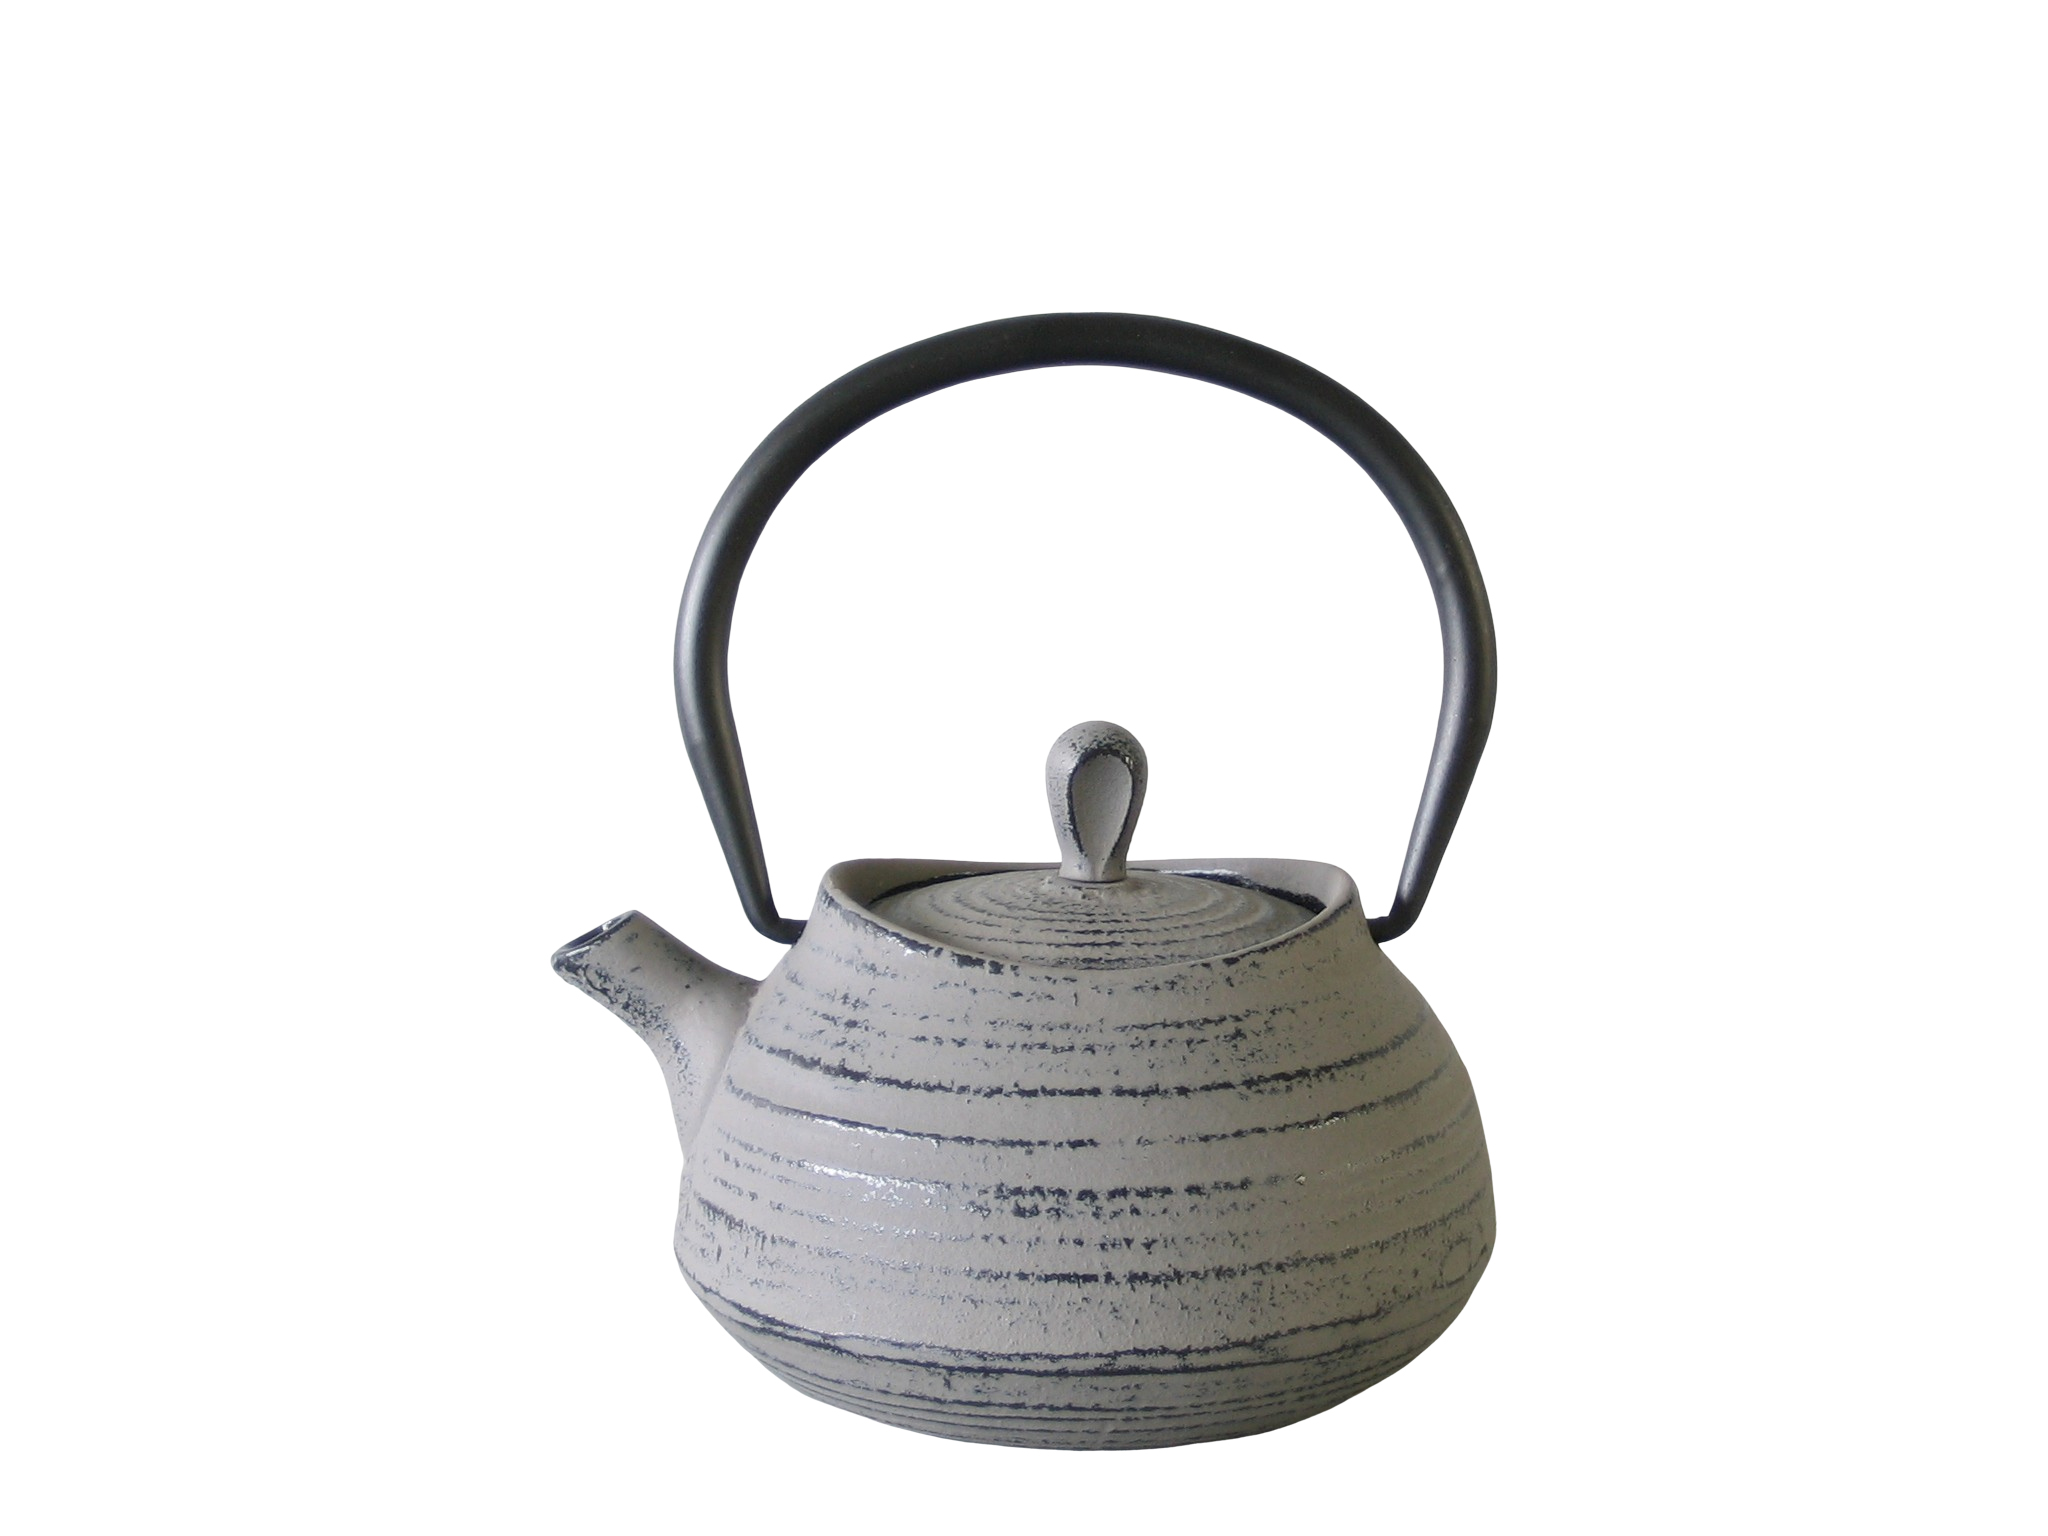 MOUNTAIN045-074 - Cast iron teapot enameled interior 0.45 L Light grey color - Green Leaf